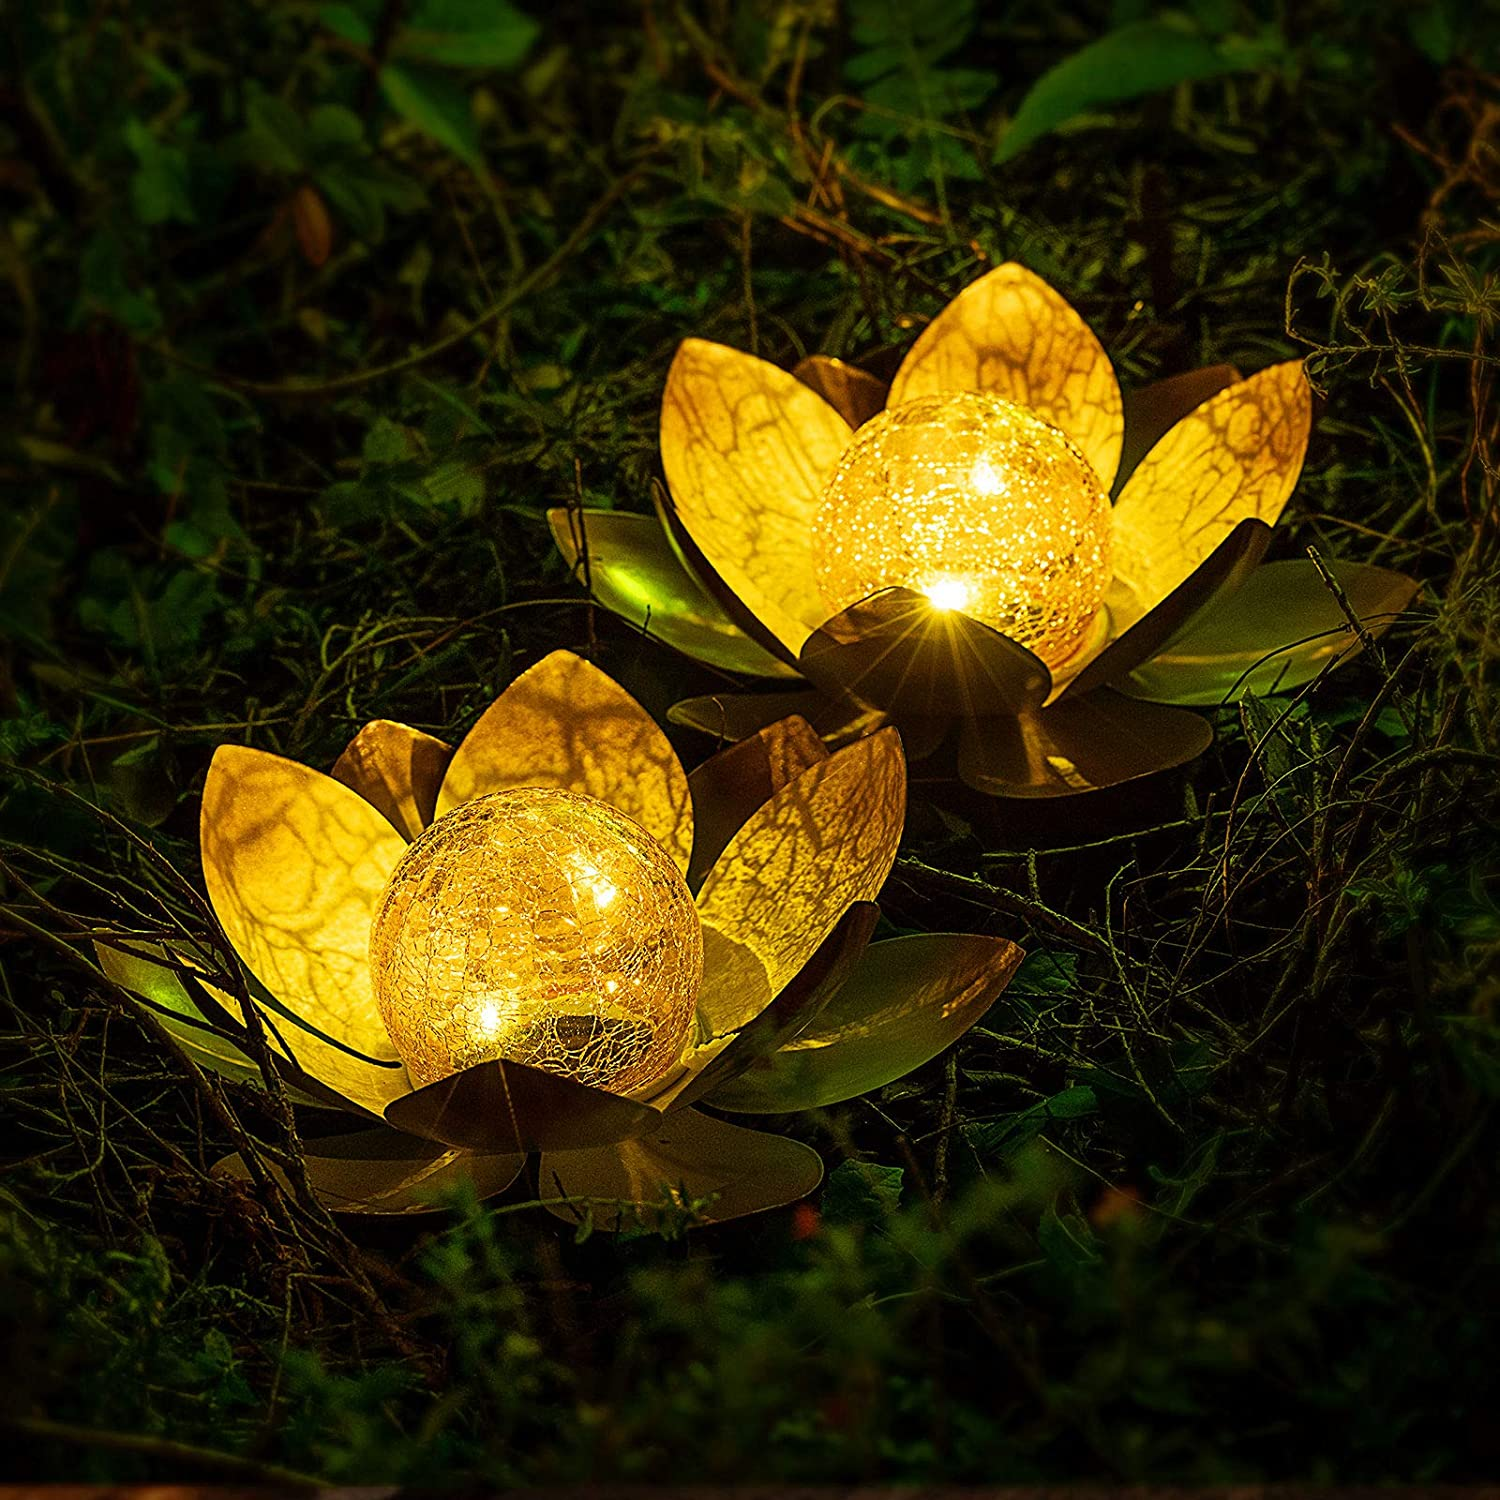 AIINY Garden Solar Light Outdoor(2Pack) , Amber Crackle Globe Glass Lotus Decoration , Waterproof Orange Metal LED Flower Lights for Patio,Lawn,Walkway,Tabletop,Ground 2Pack